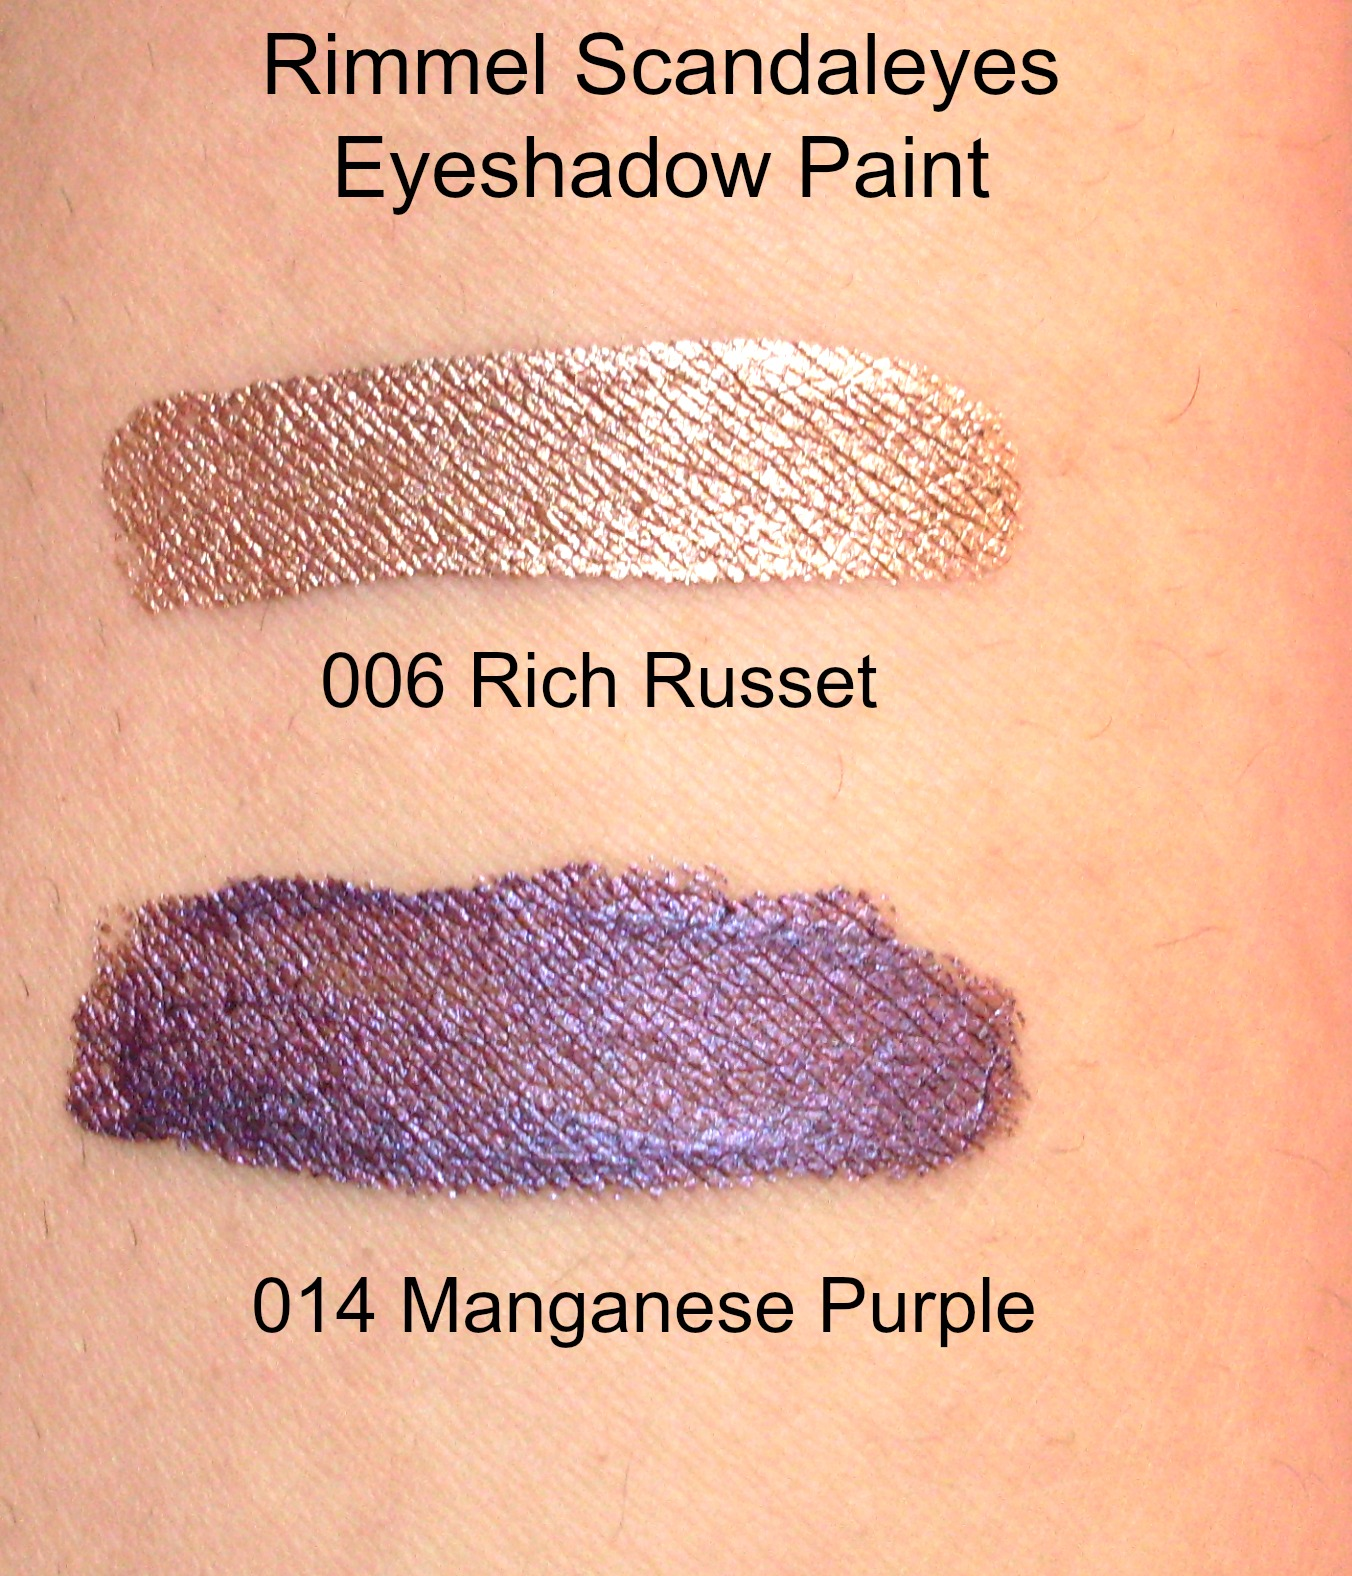 Swatches of Rimmel Scandaleyes Eyeshadow Paint in 006 Rich Russet and 014 Manganese Purple